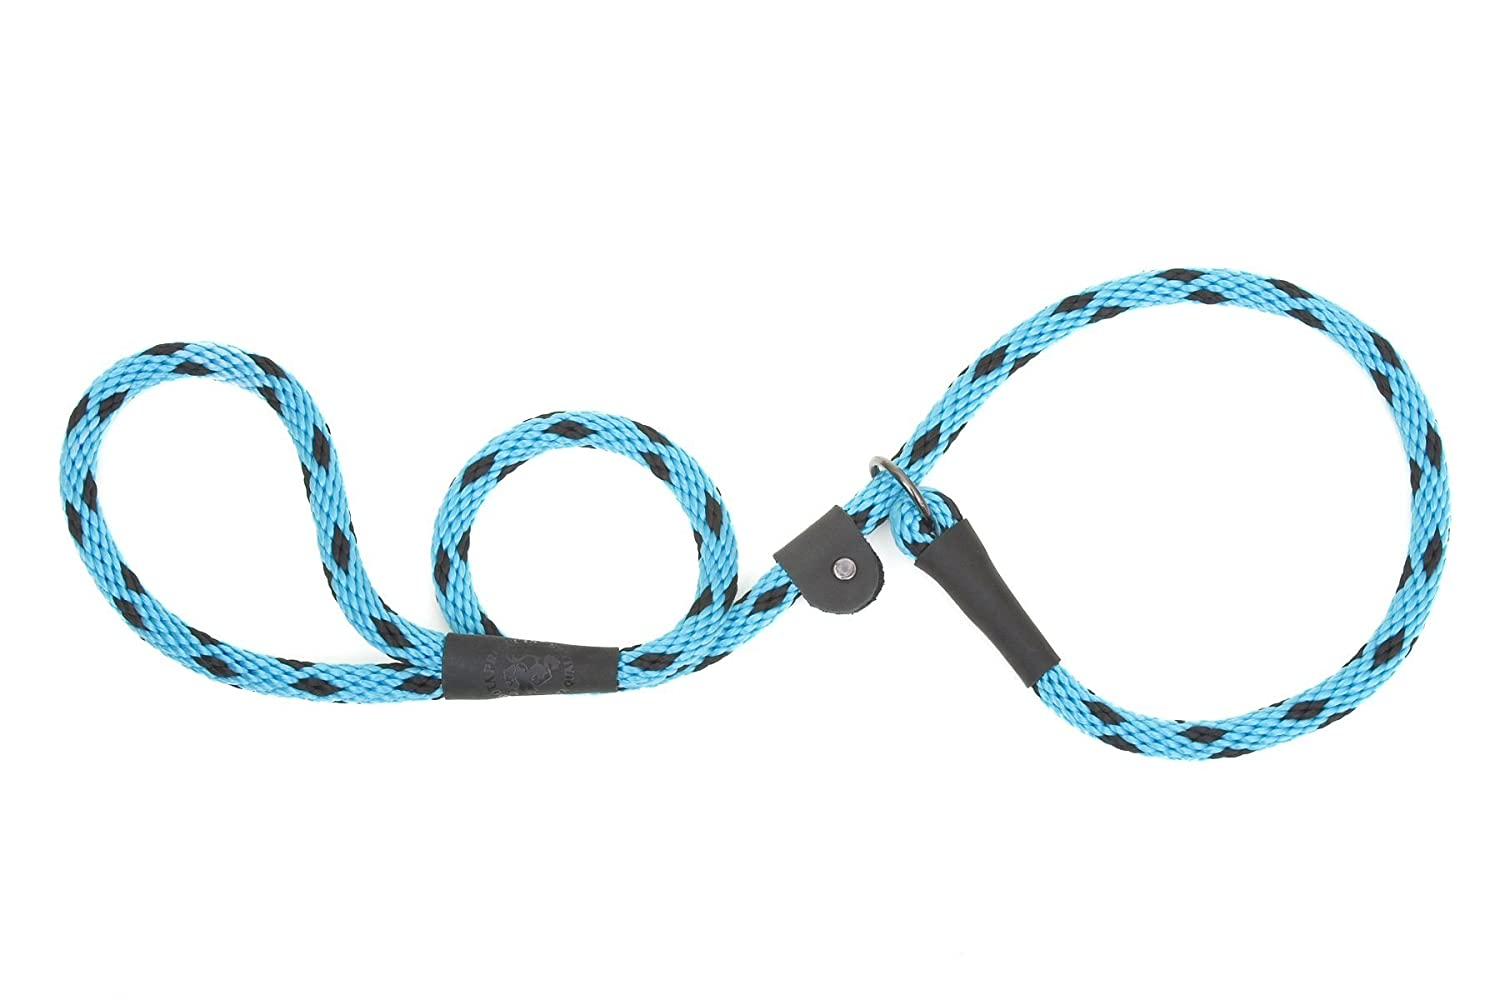 "durable service Mendota Products Dog Slip Lead, 3/8""x6', Black Ice Turquoise"